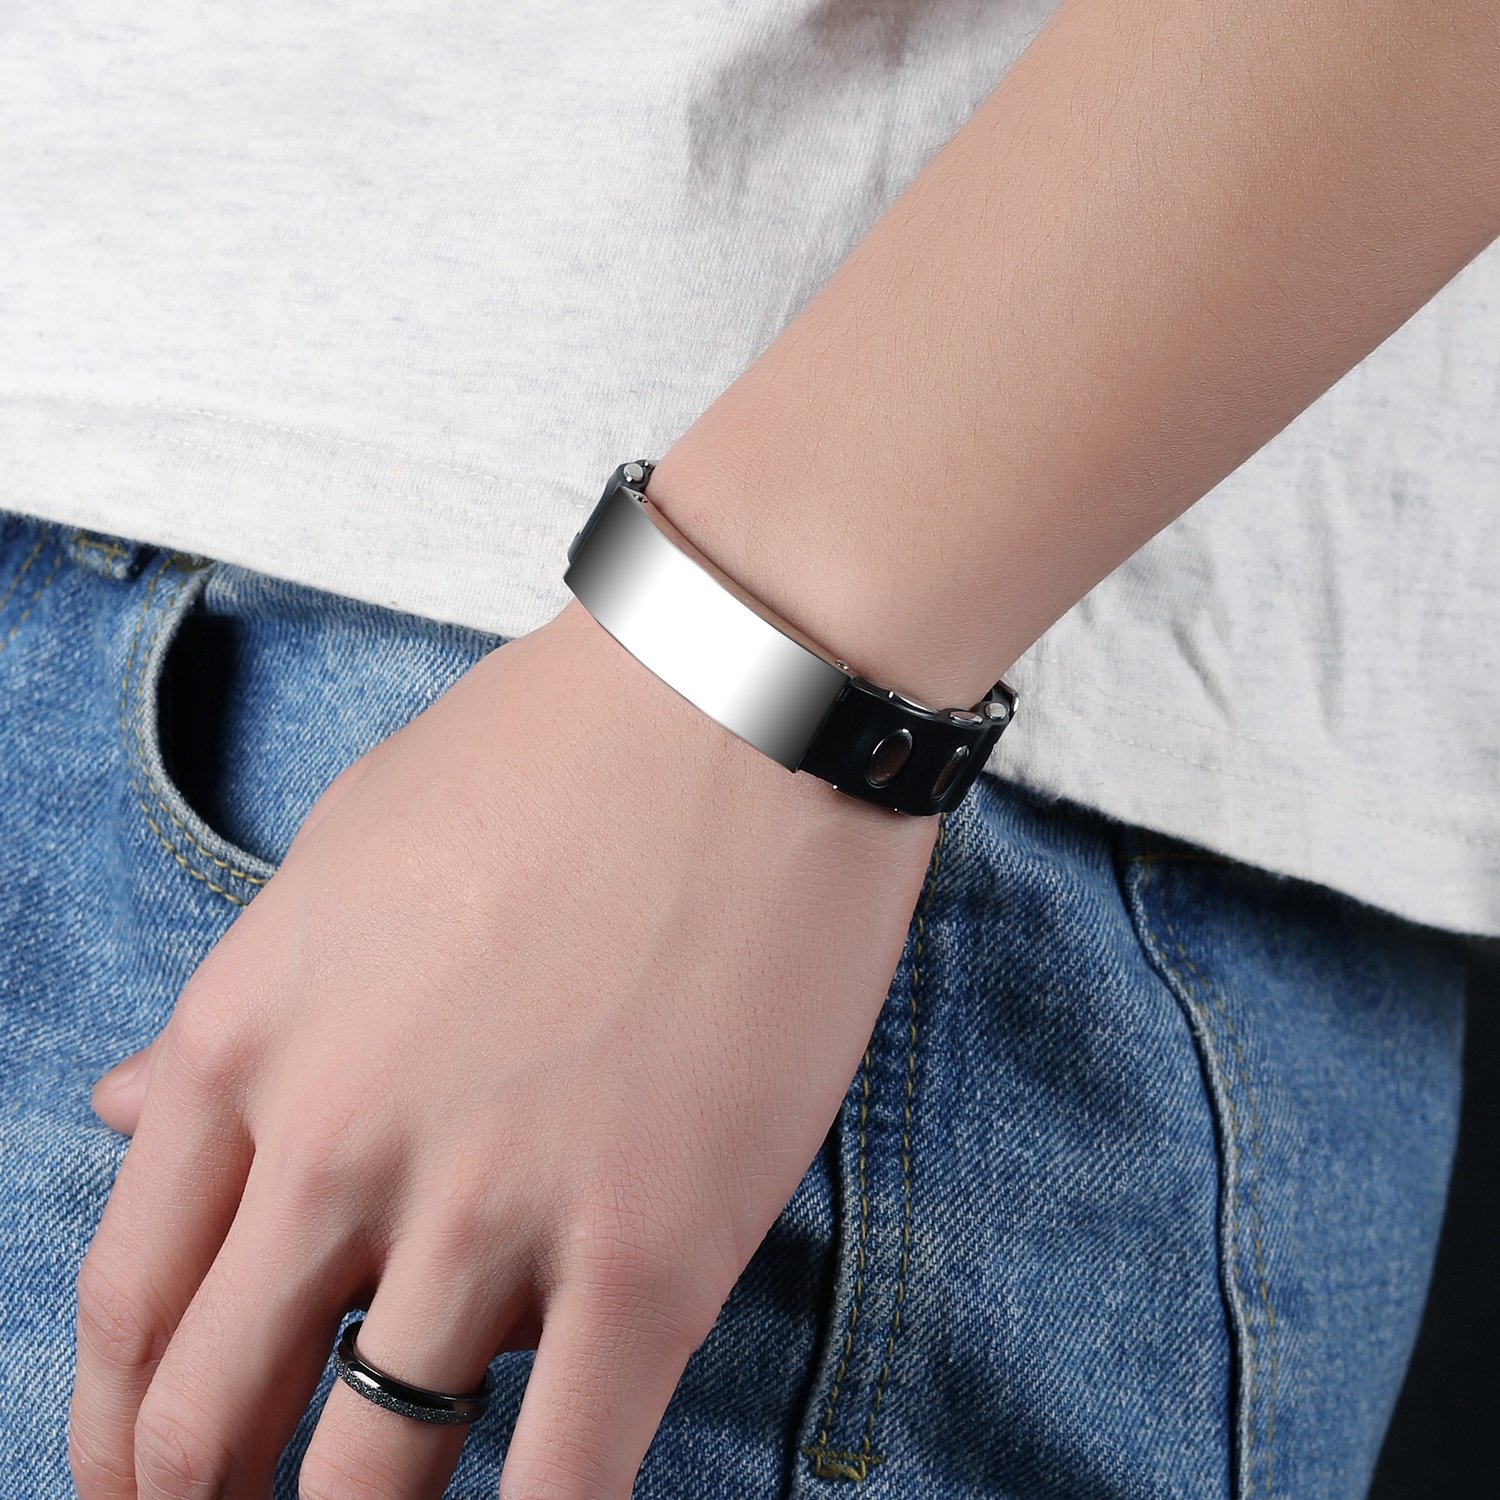 LOHOME Mens Fashion Bracelets Silicone chain Stainless Steel Charm Bracelet for Men